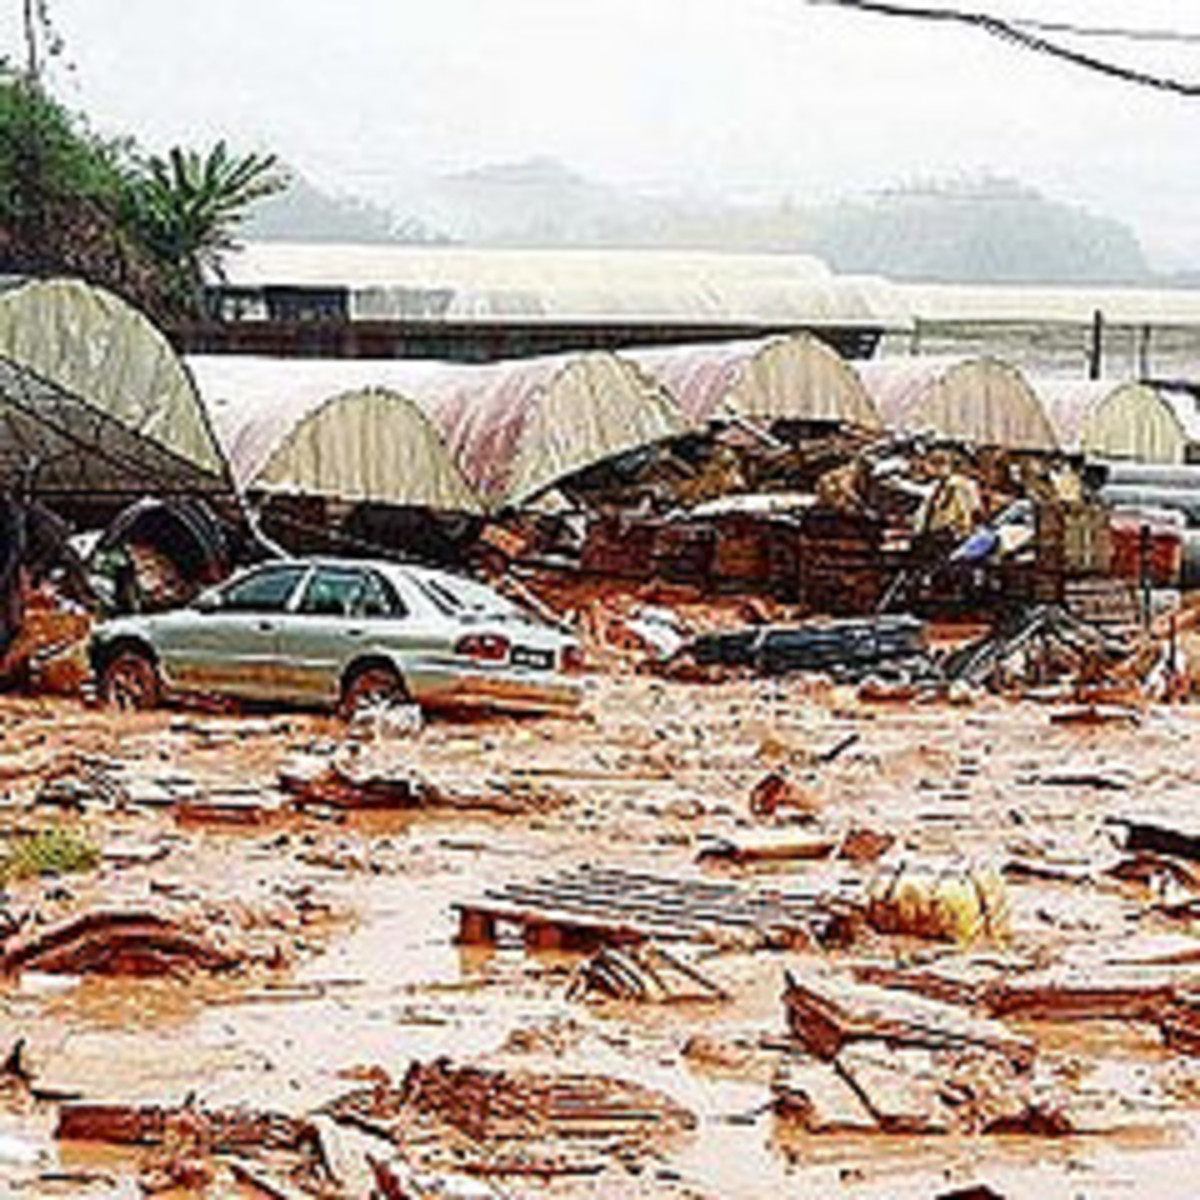 Can we do some actions to to stay away from the disaster ?